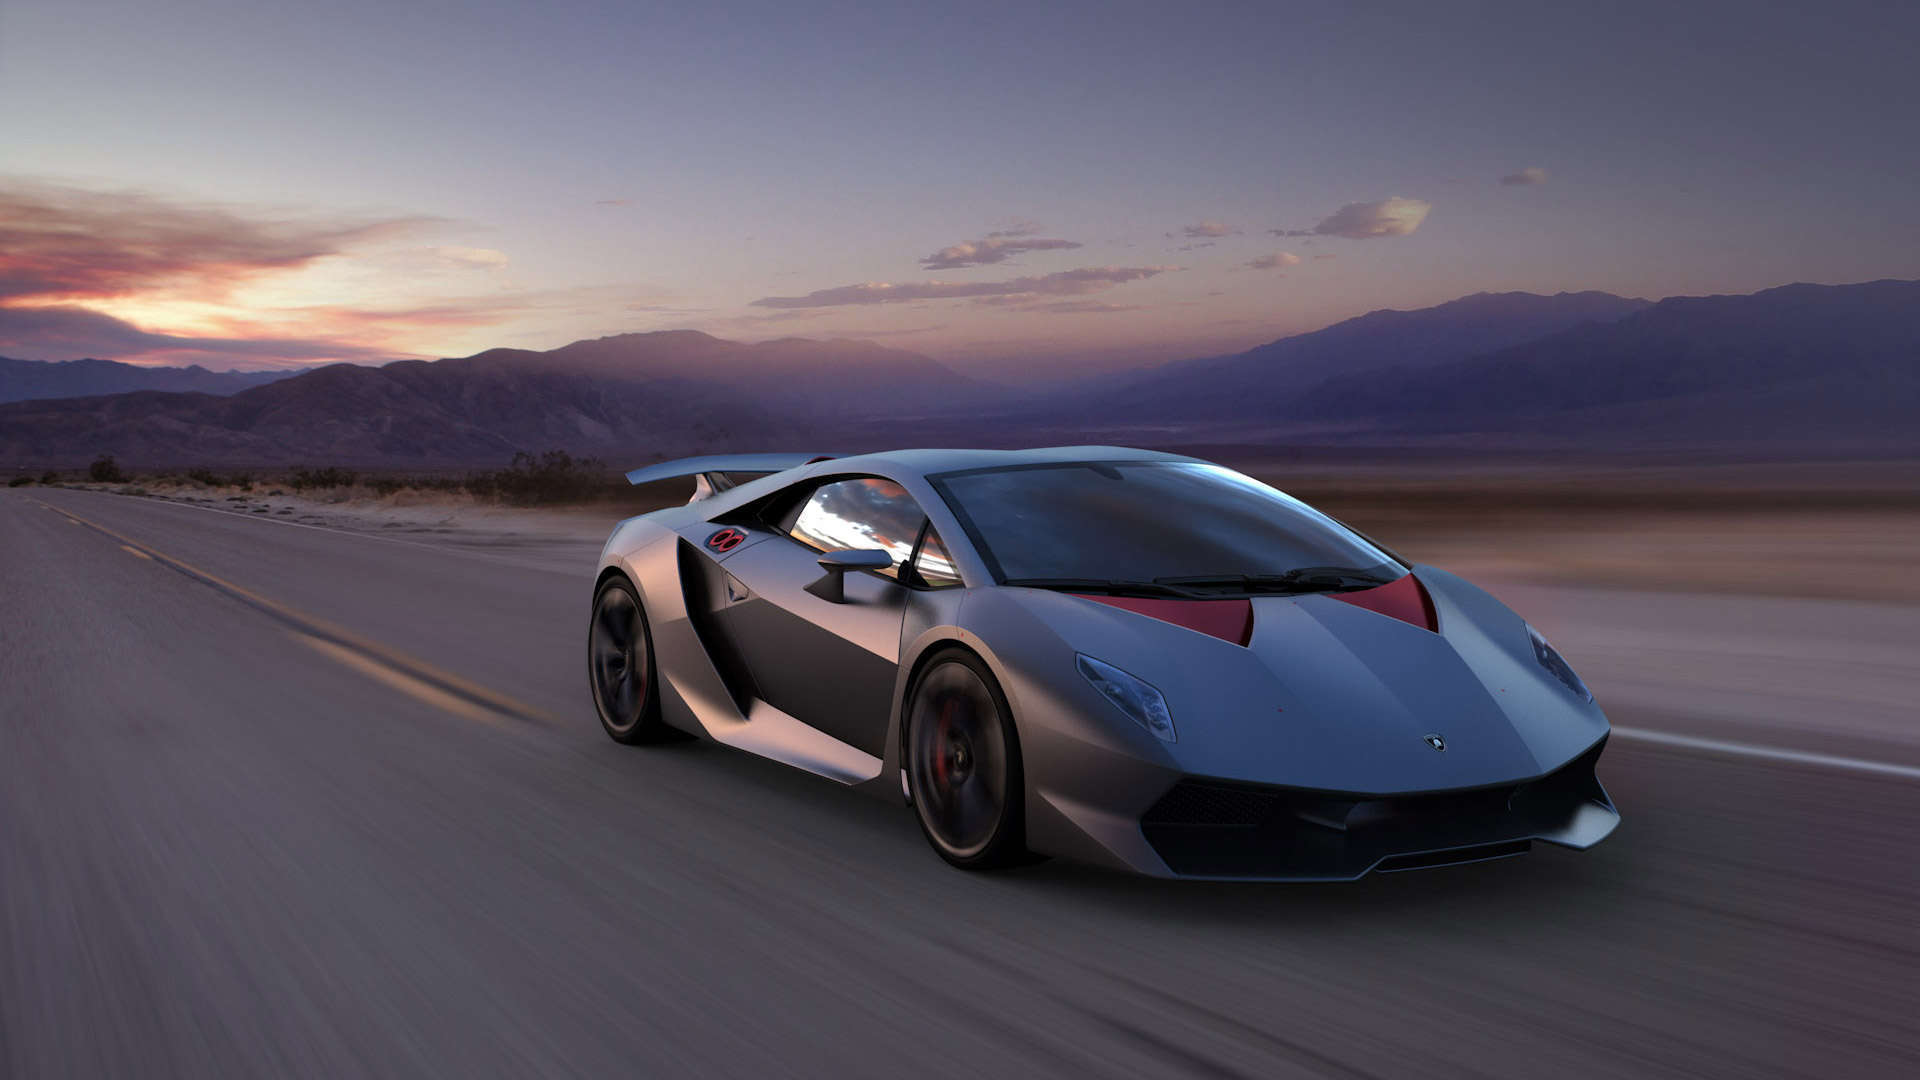 Wallpaper Lamborghini Sesto Elemento HD Wallpaper 1080p Upload at 1920x1080